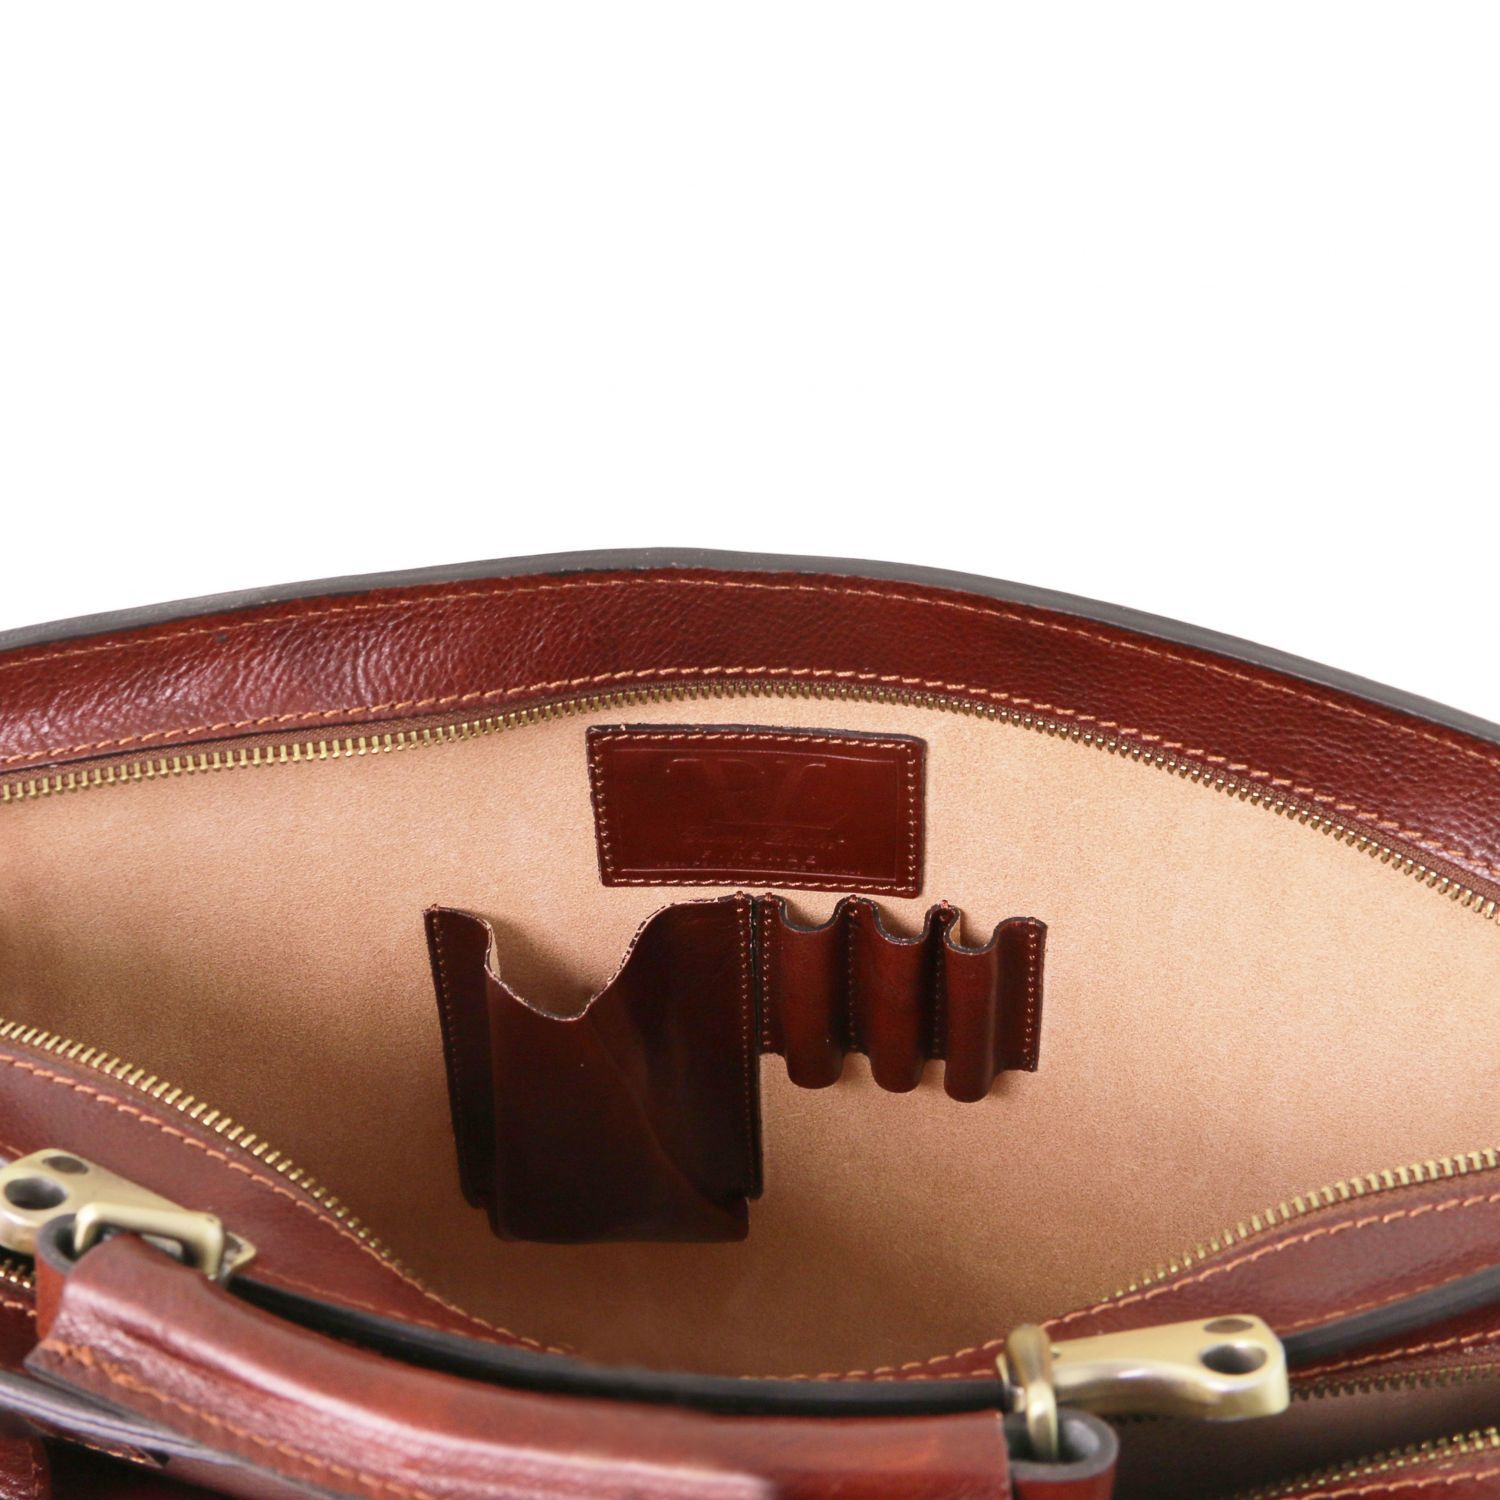 Venezia - Leather briefcase 2 compartments (TL141268) - Leather briefcases | DILUSSOBAGS